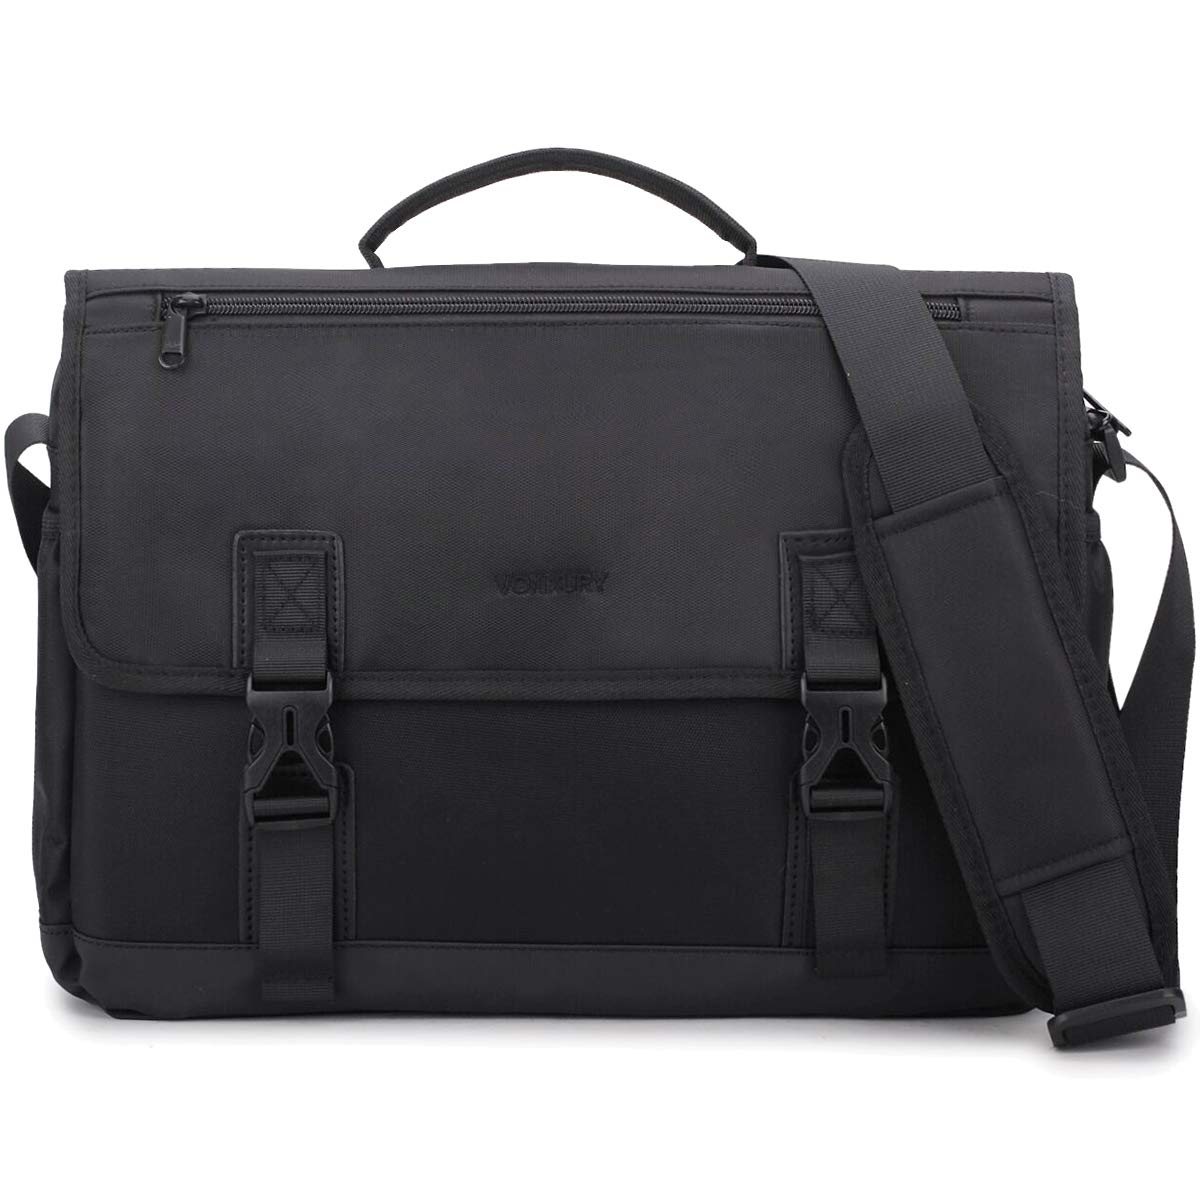 Amazon.com  Messenger Bag For Men,14in Laptop Briefcase Satchel Water  Resistant Lightweight Shoulder Bag  VX VONXURY 03db726946